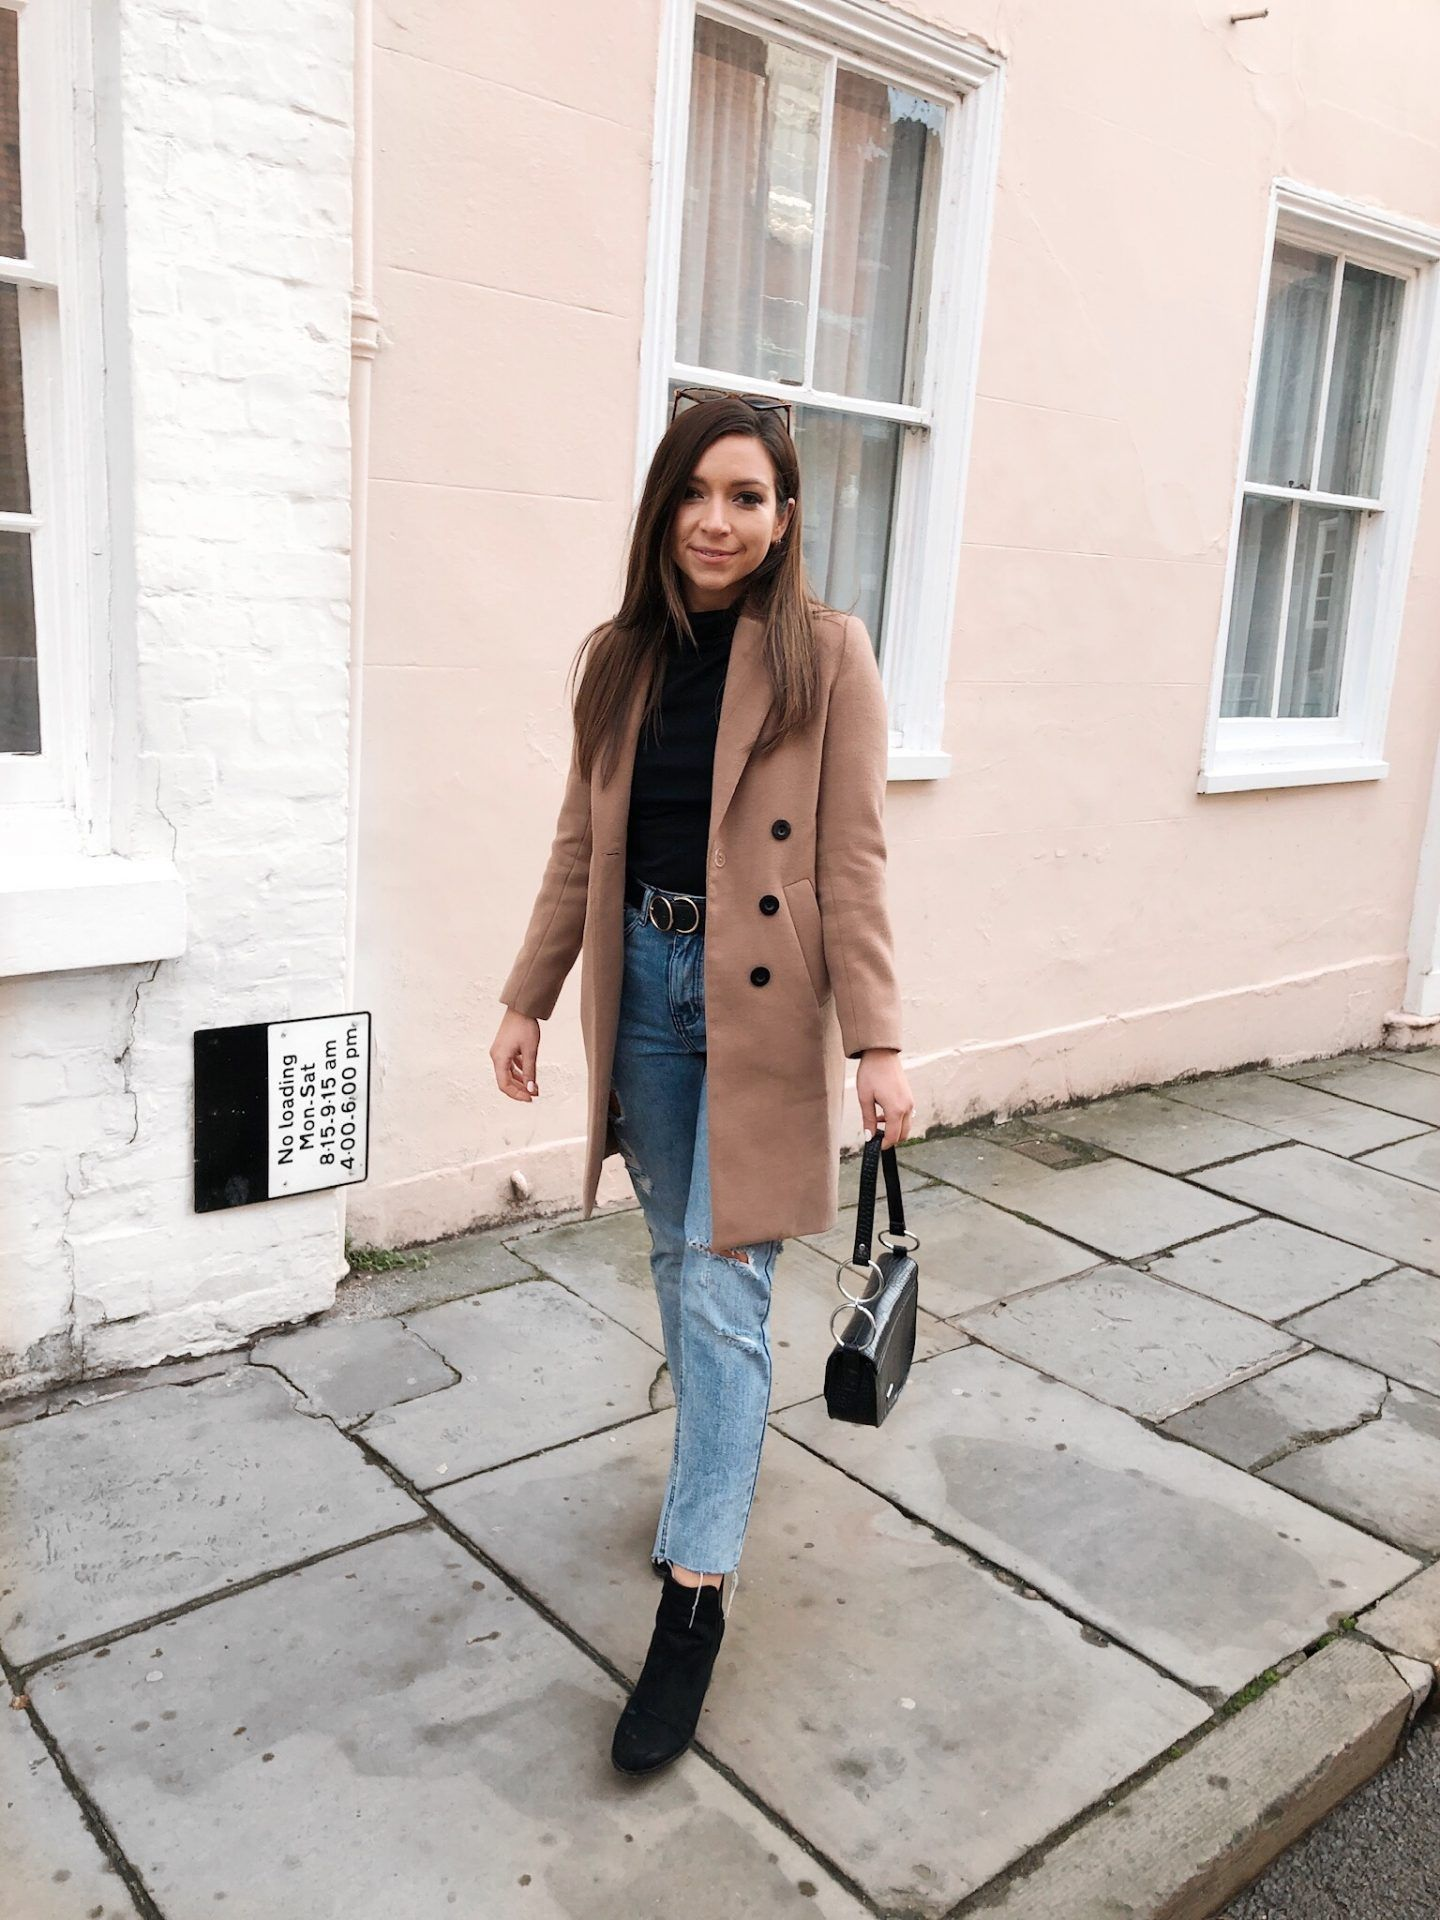 a2bd761a4b9 How To Look Chic On A Budget - The Camel Coat | Winter Fashion ...